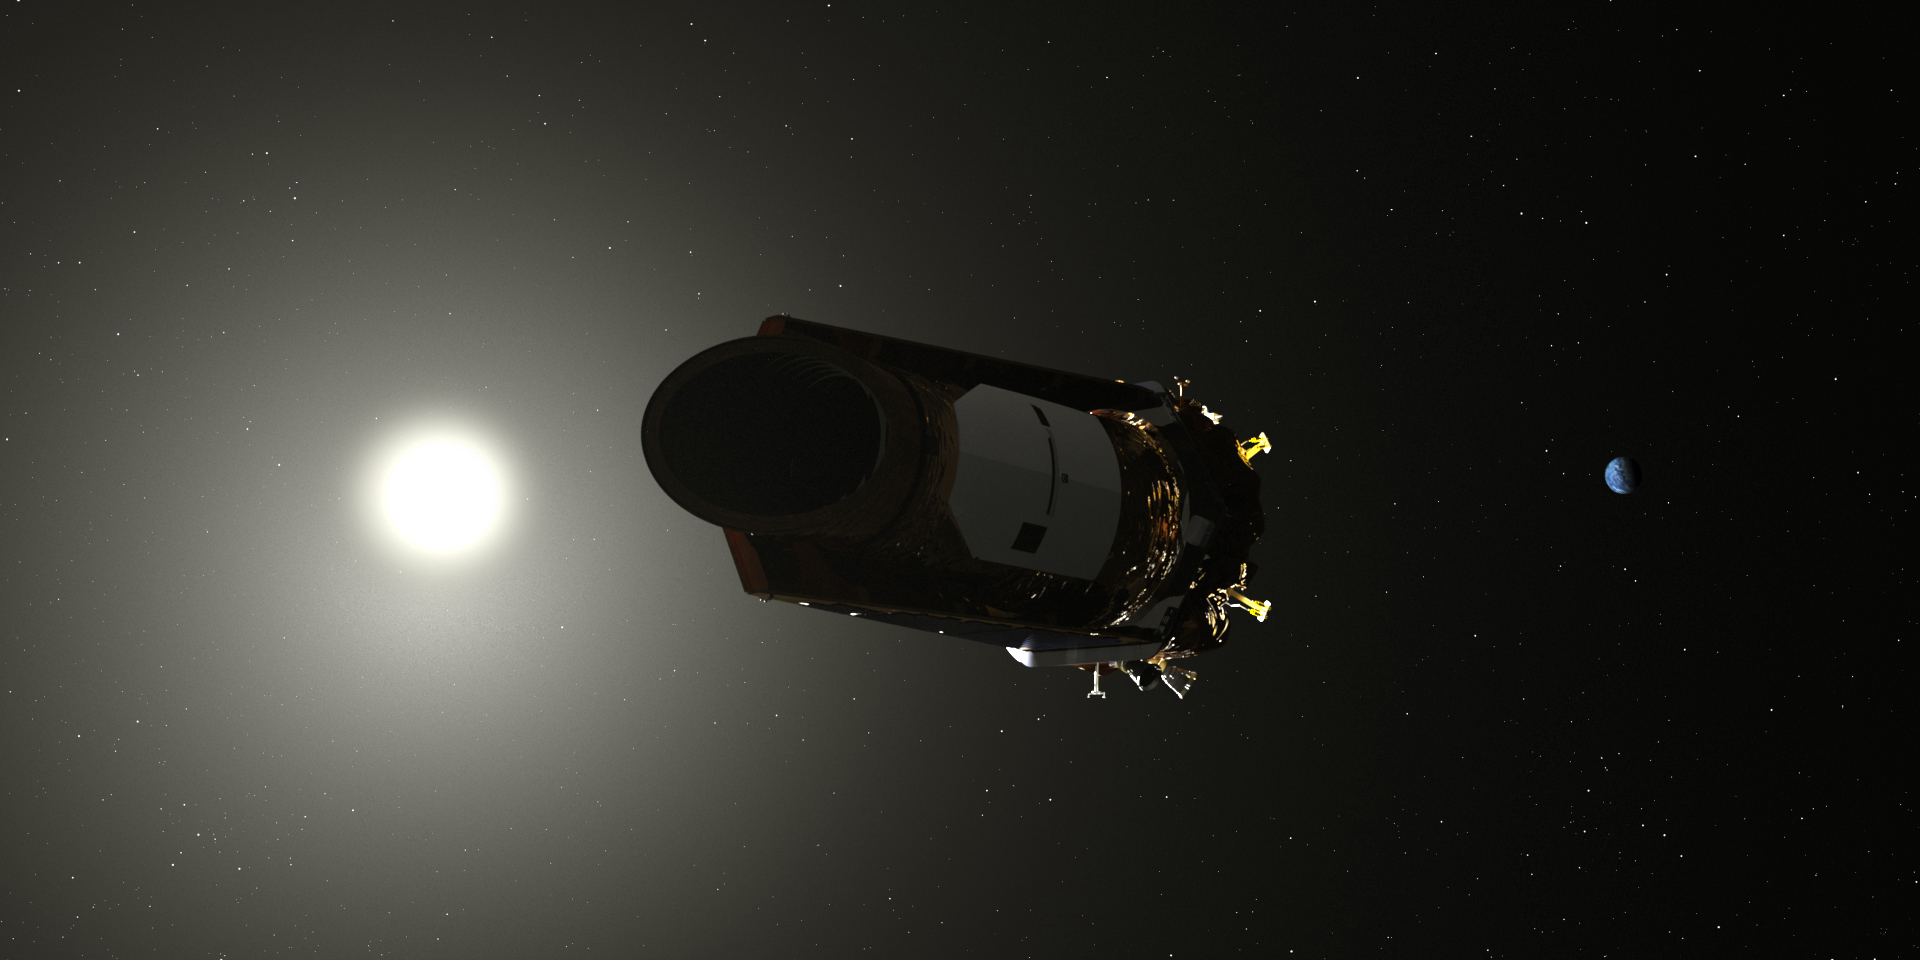 NASA to Hold Media Call on Status of Kepler Space Telescope Today